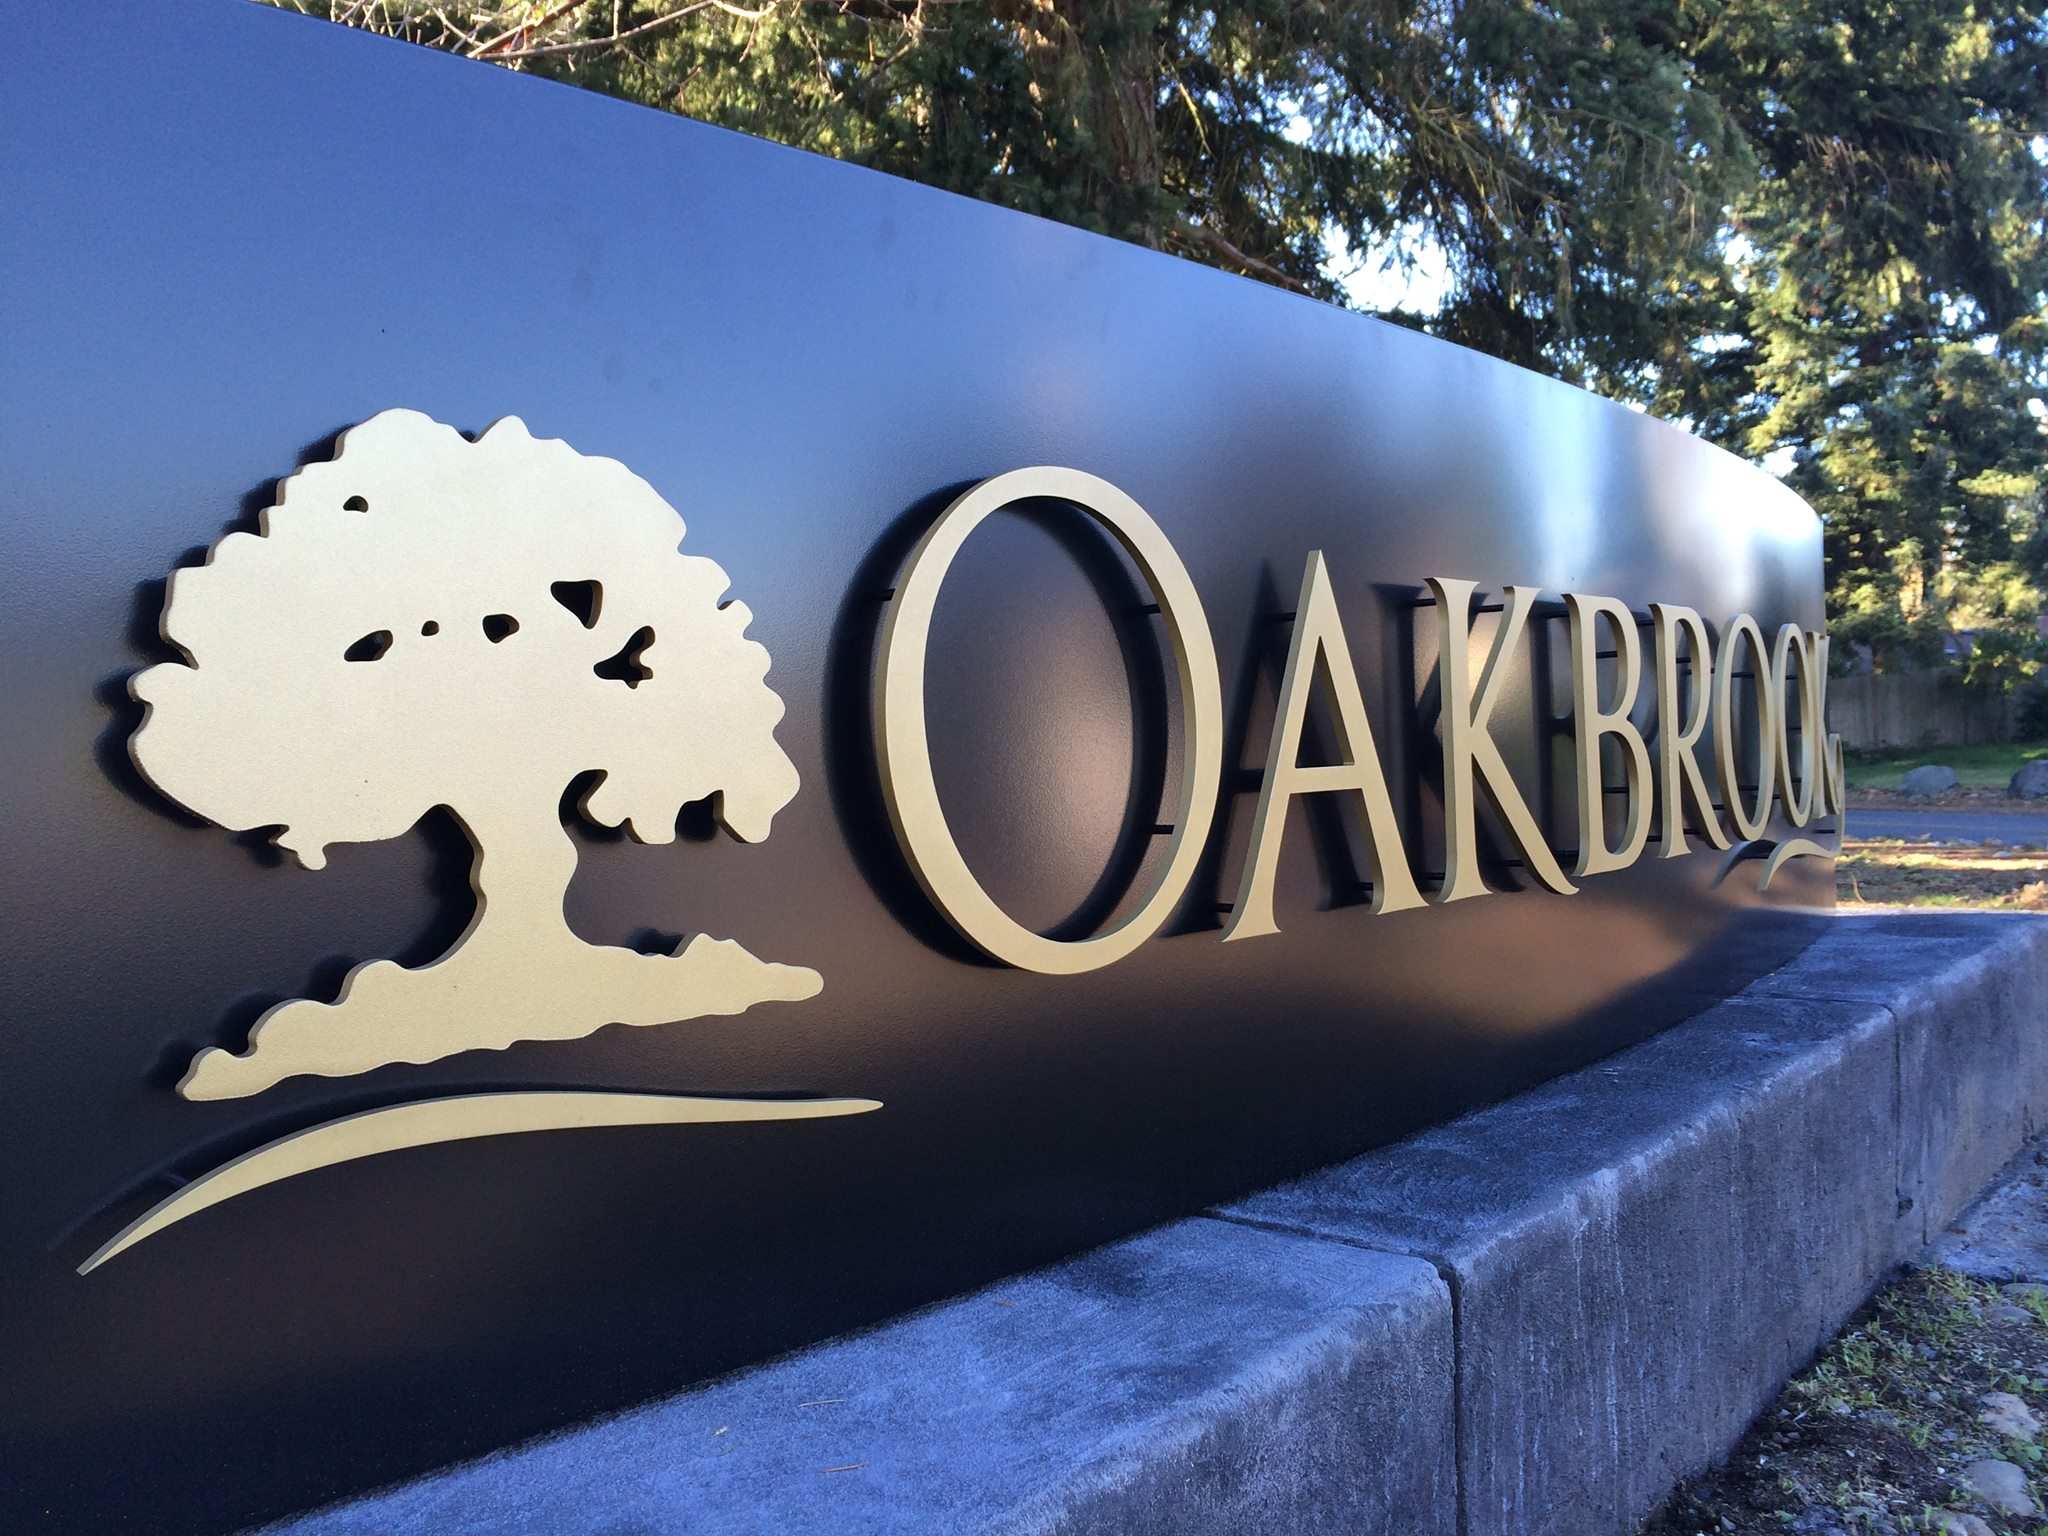 Oakbrook - Lakewood, WA Real Estate / Homes for Sale